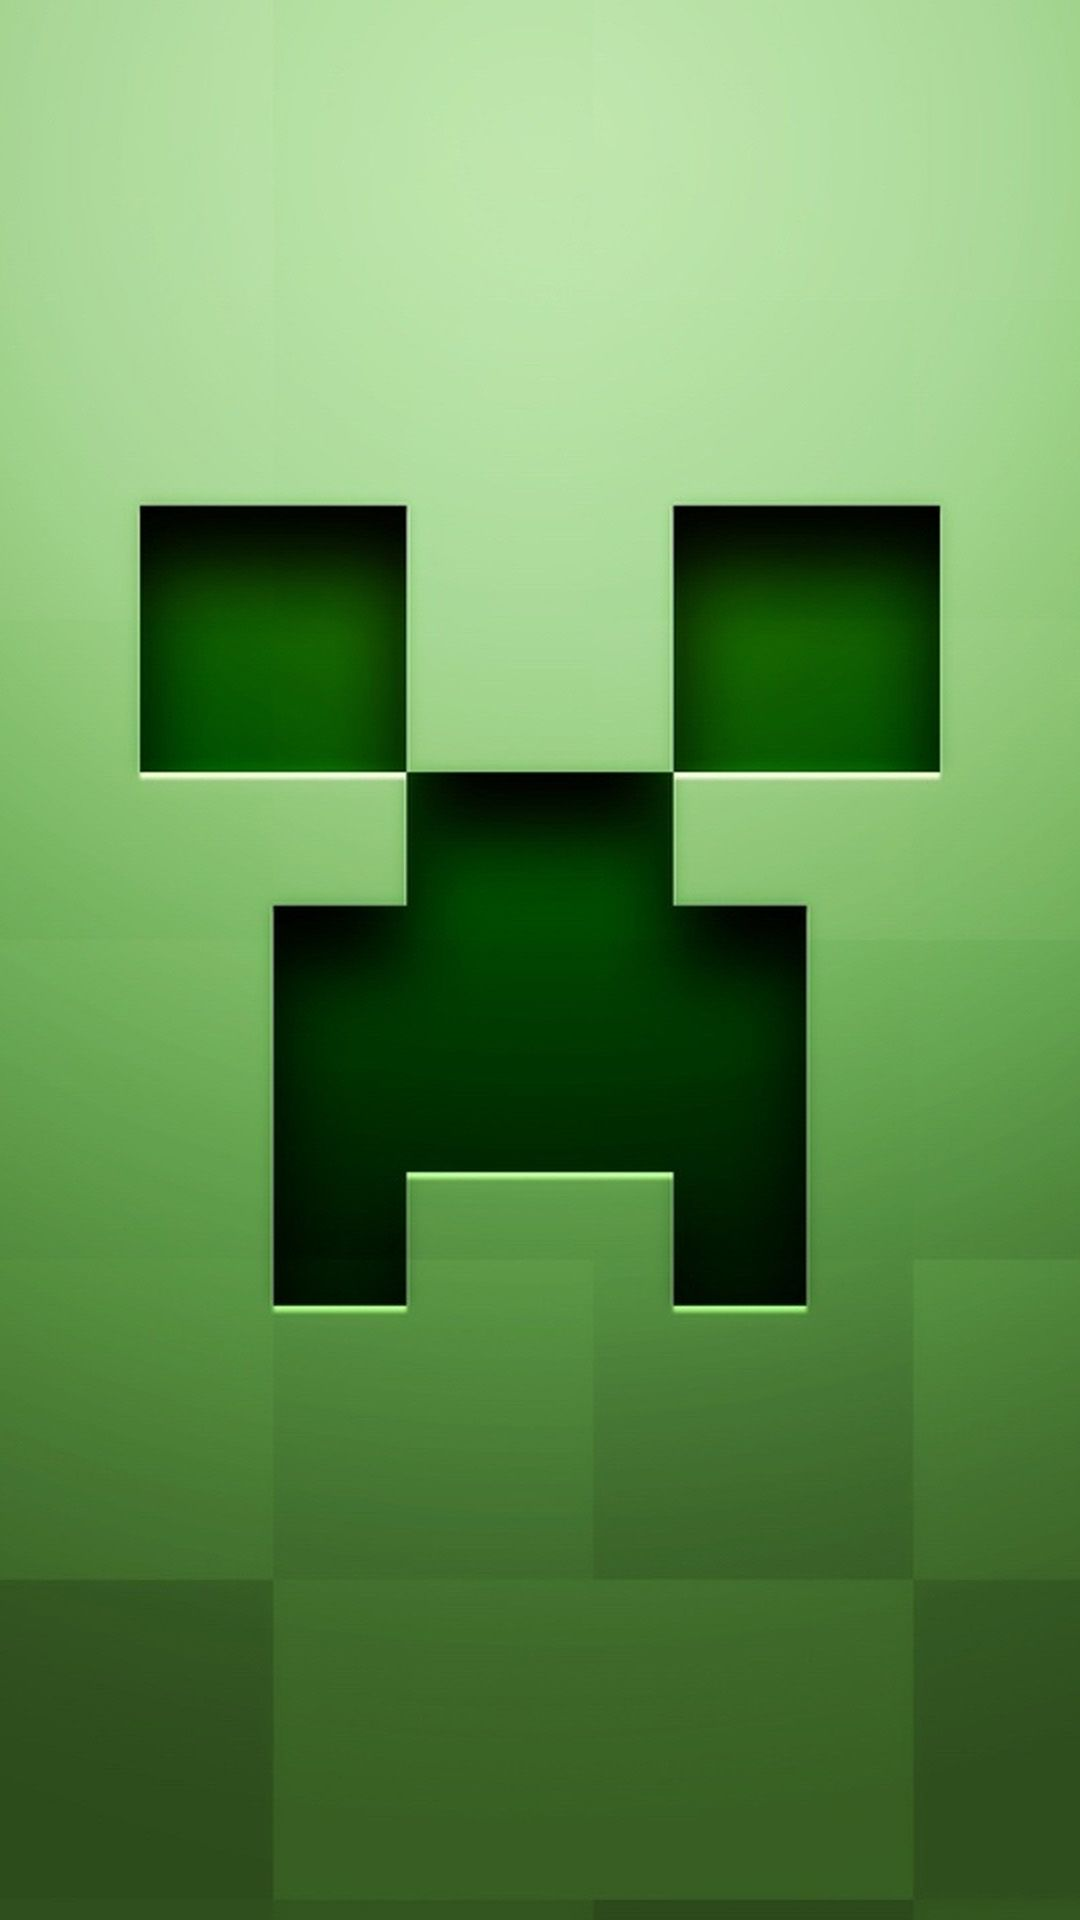 Minecraft Best Htc One Wallpapers Free And Easy To Download Minecraft Wallpaper Minecraft Posters Minecraft